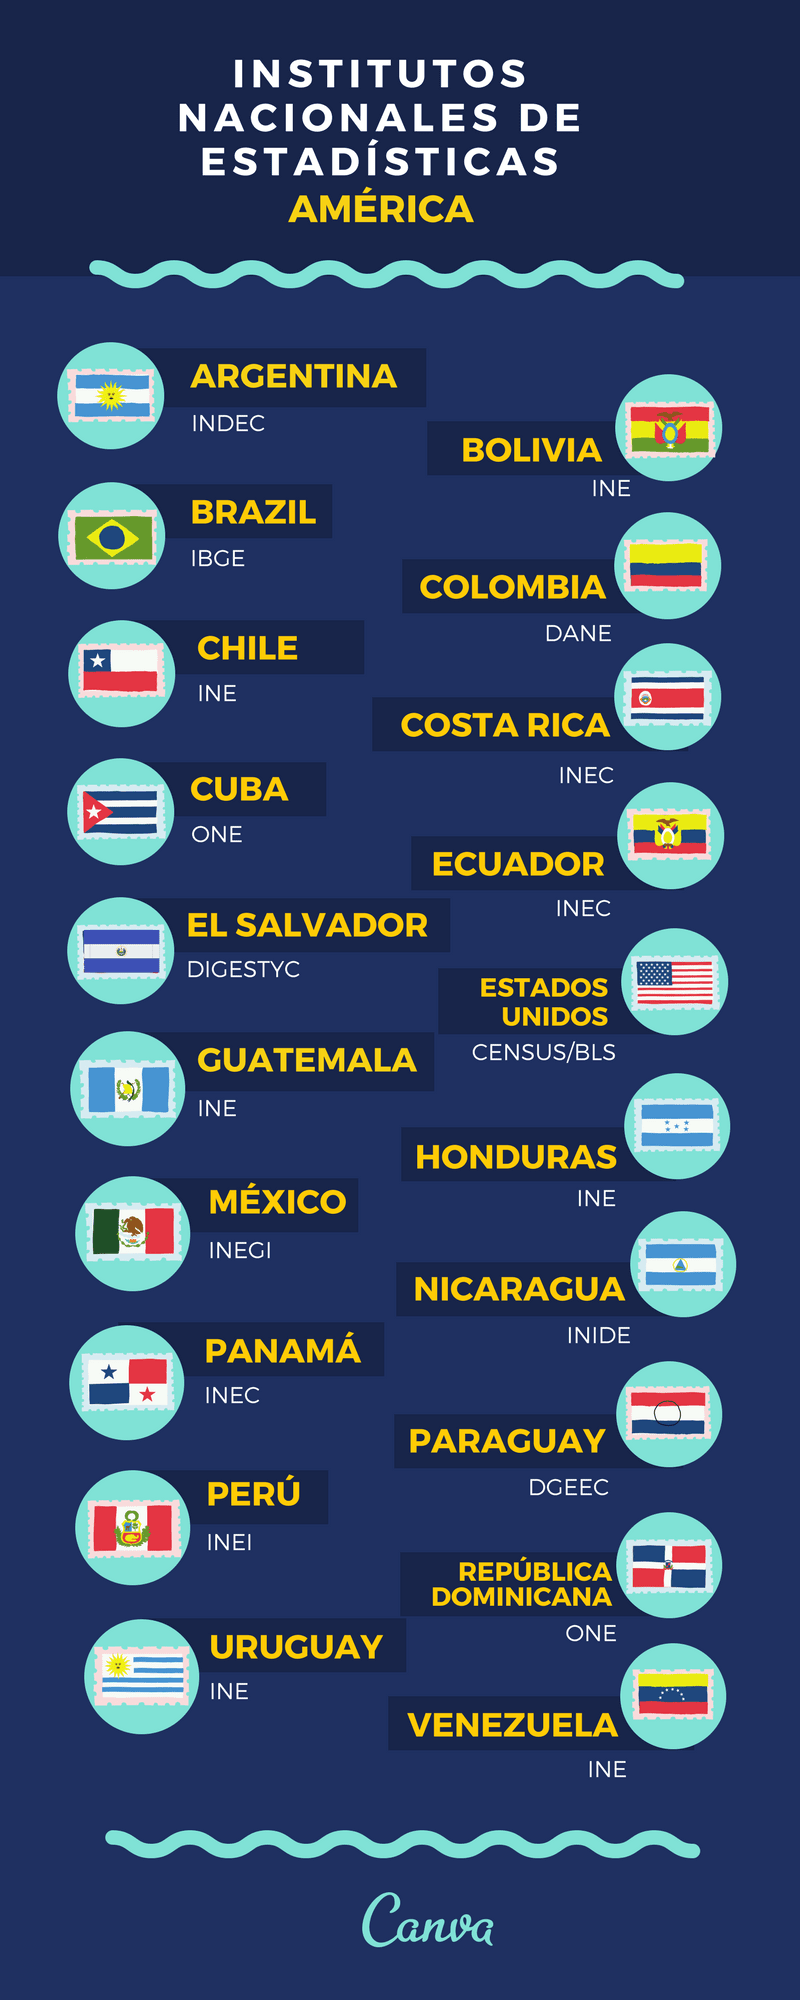 Institutos Nacionales de Estadística en América